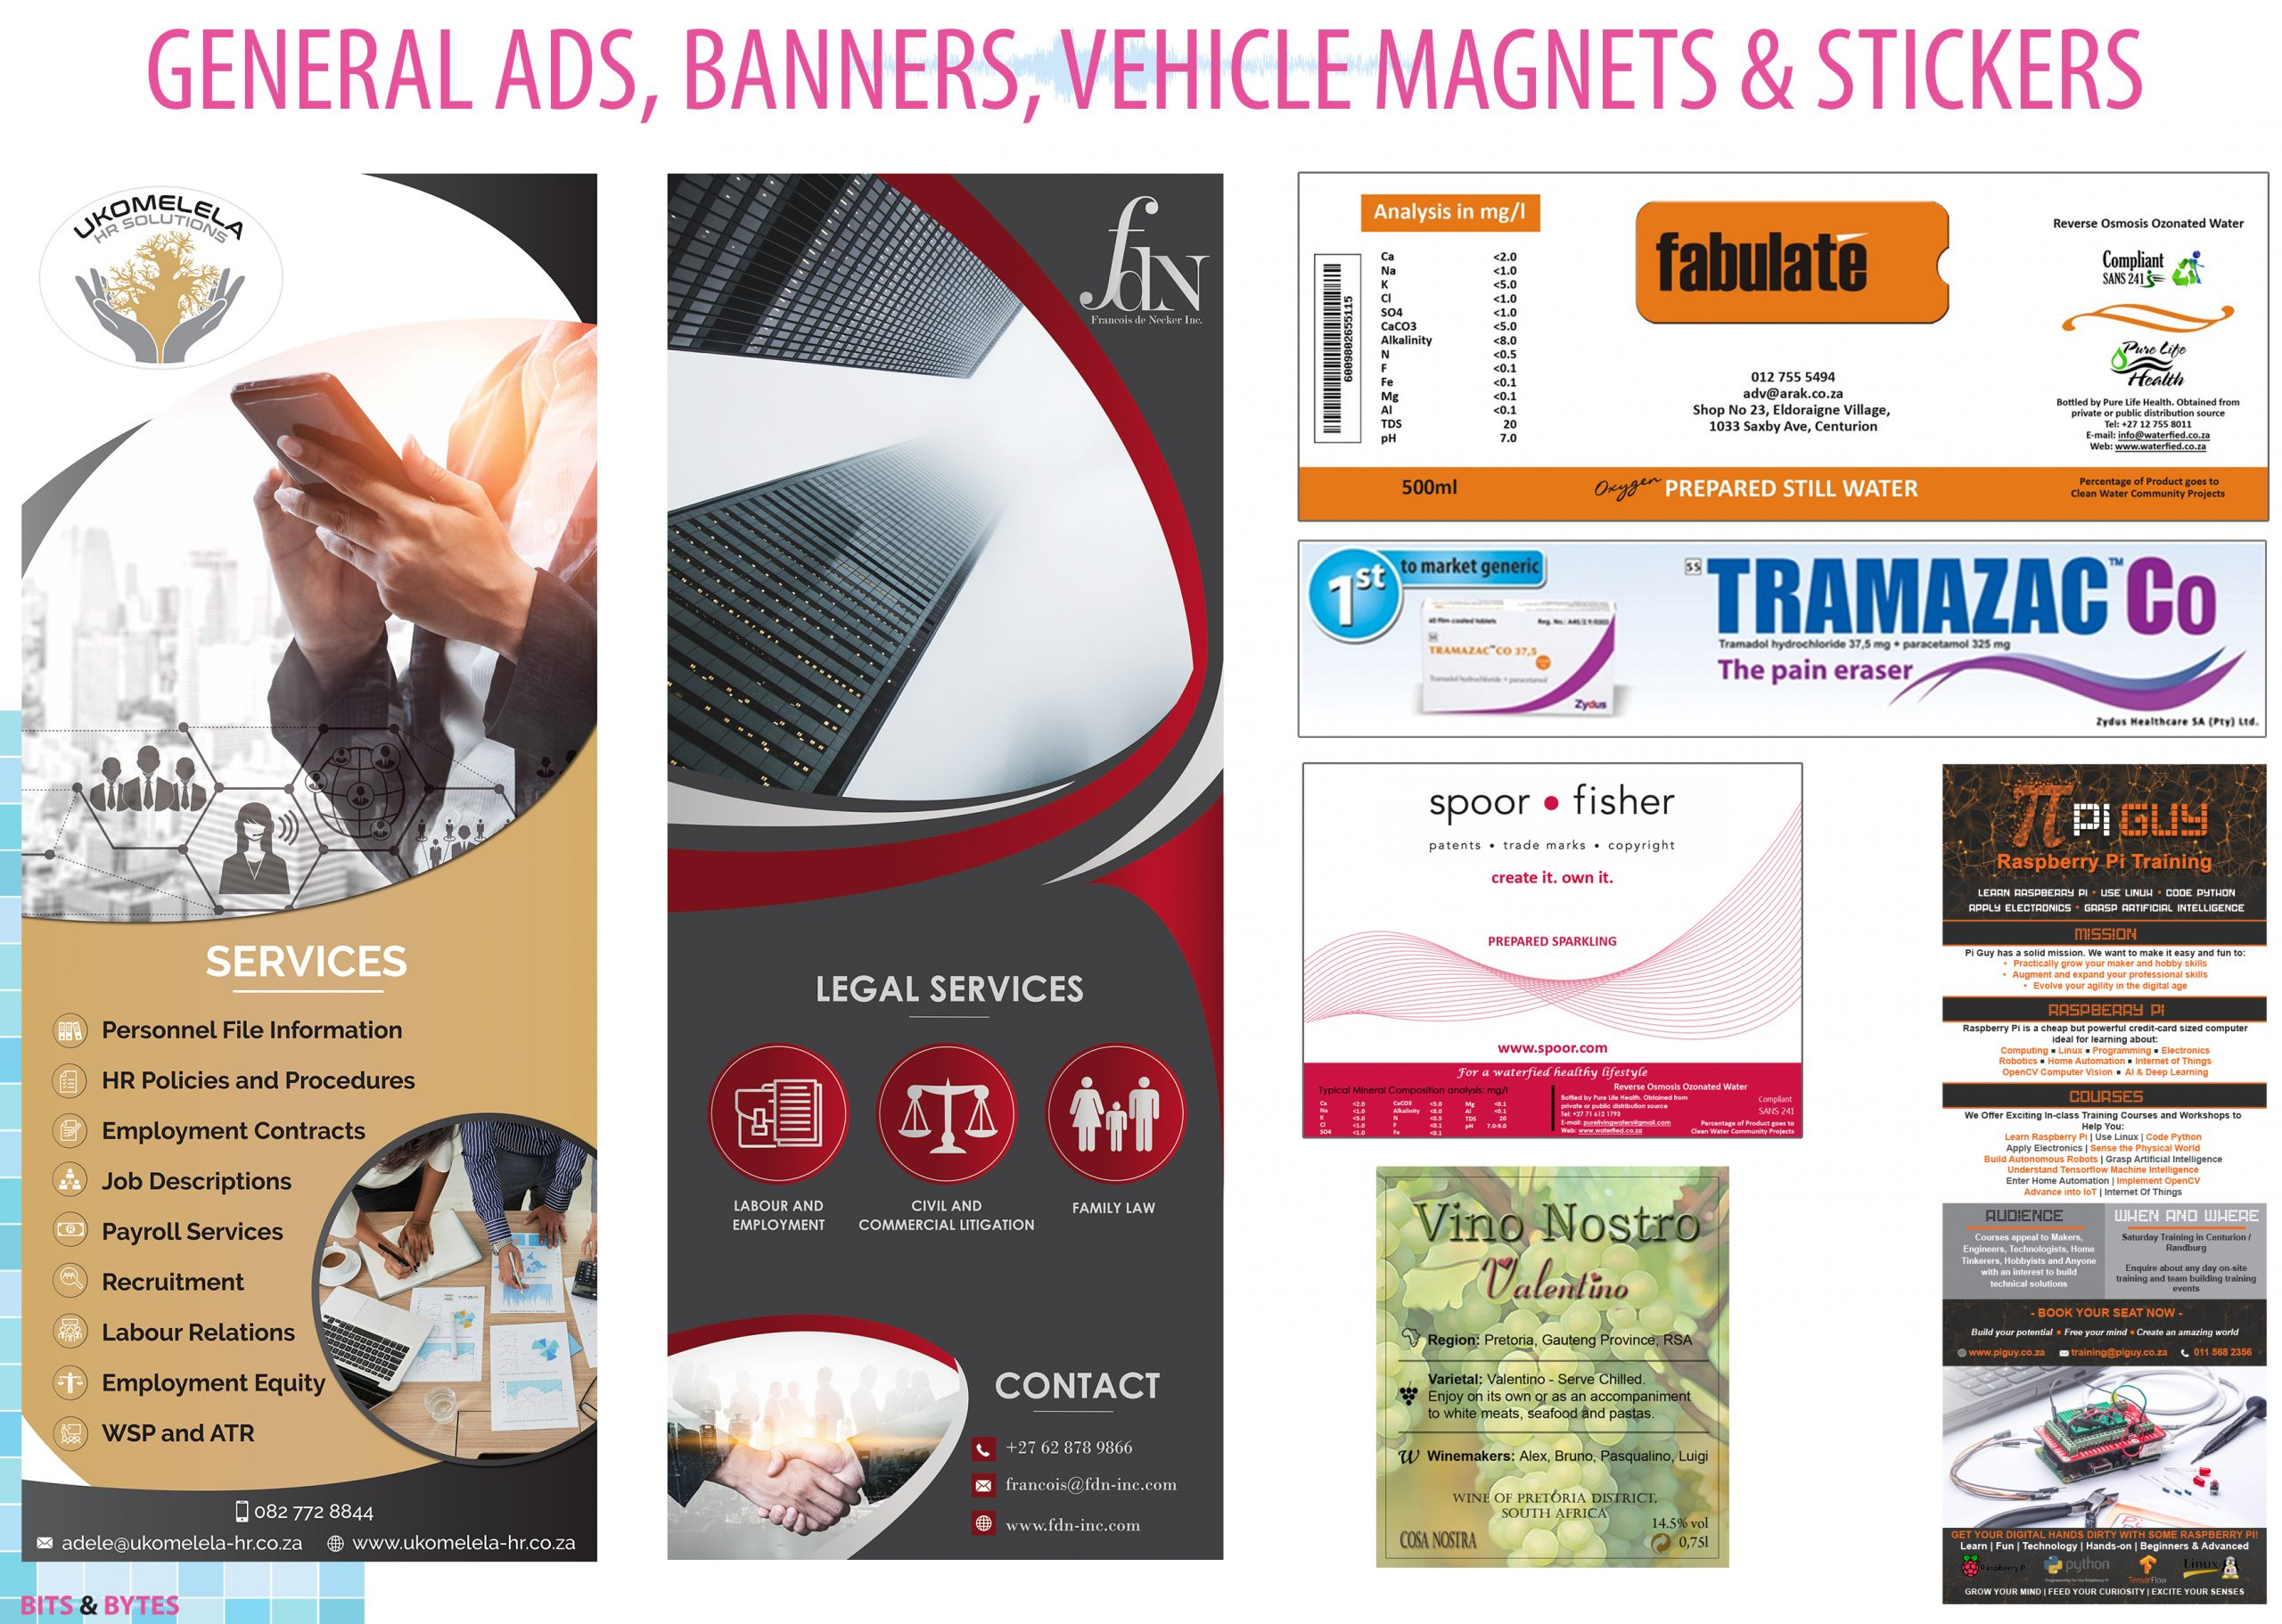 General Ads, Banners, Vehicle Magnets & Stickers